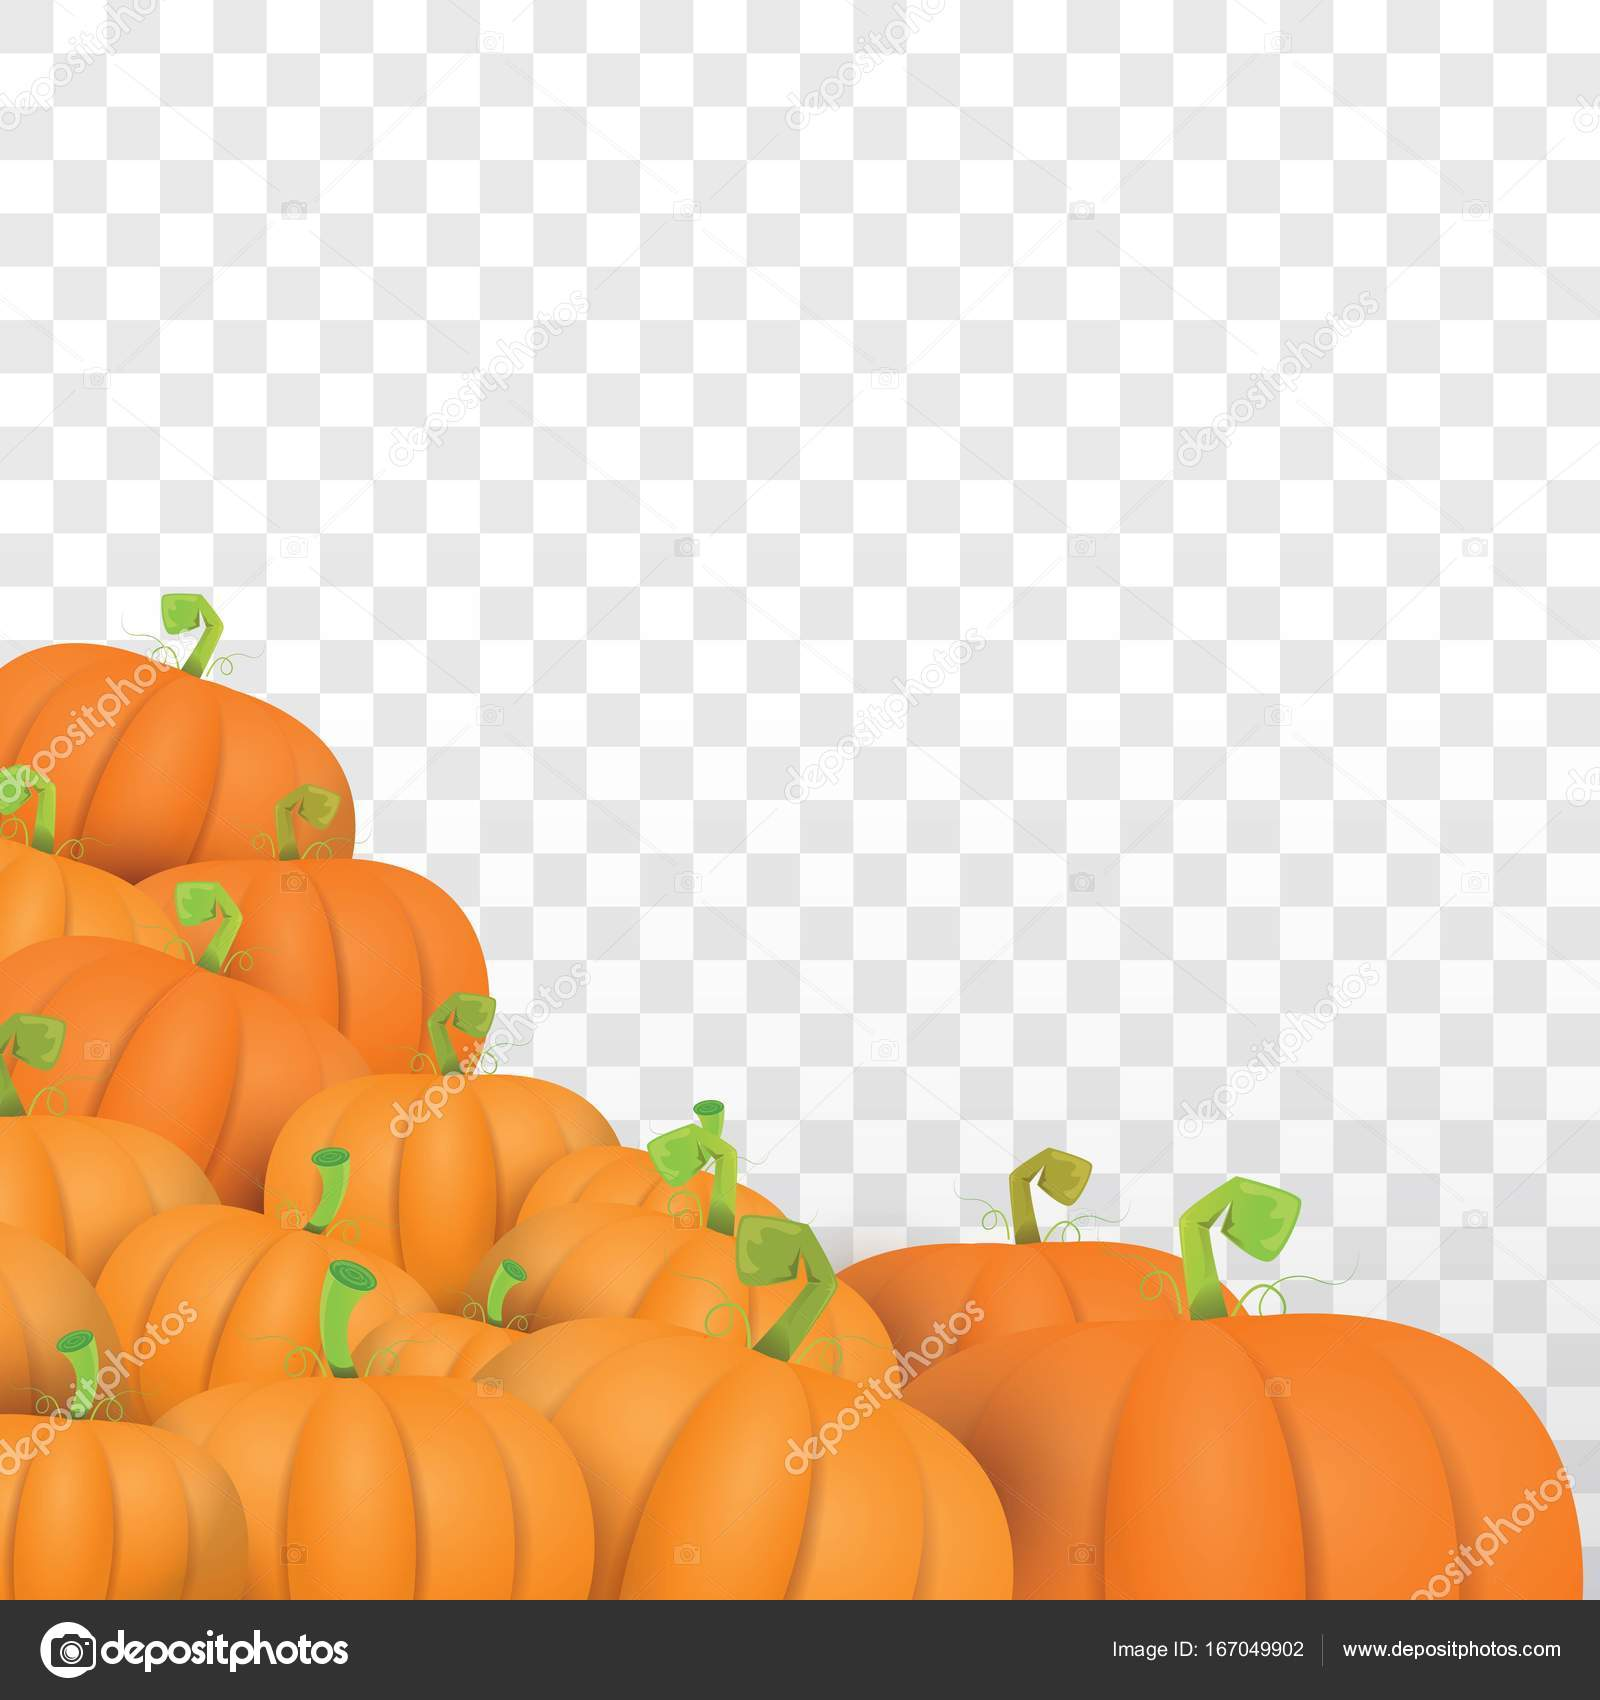 autumn vector orange pumpkins border design template for banners and ...